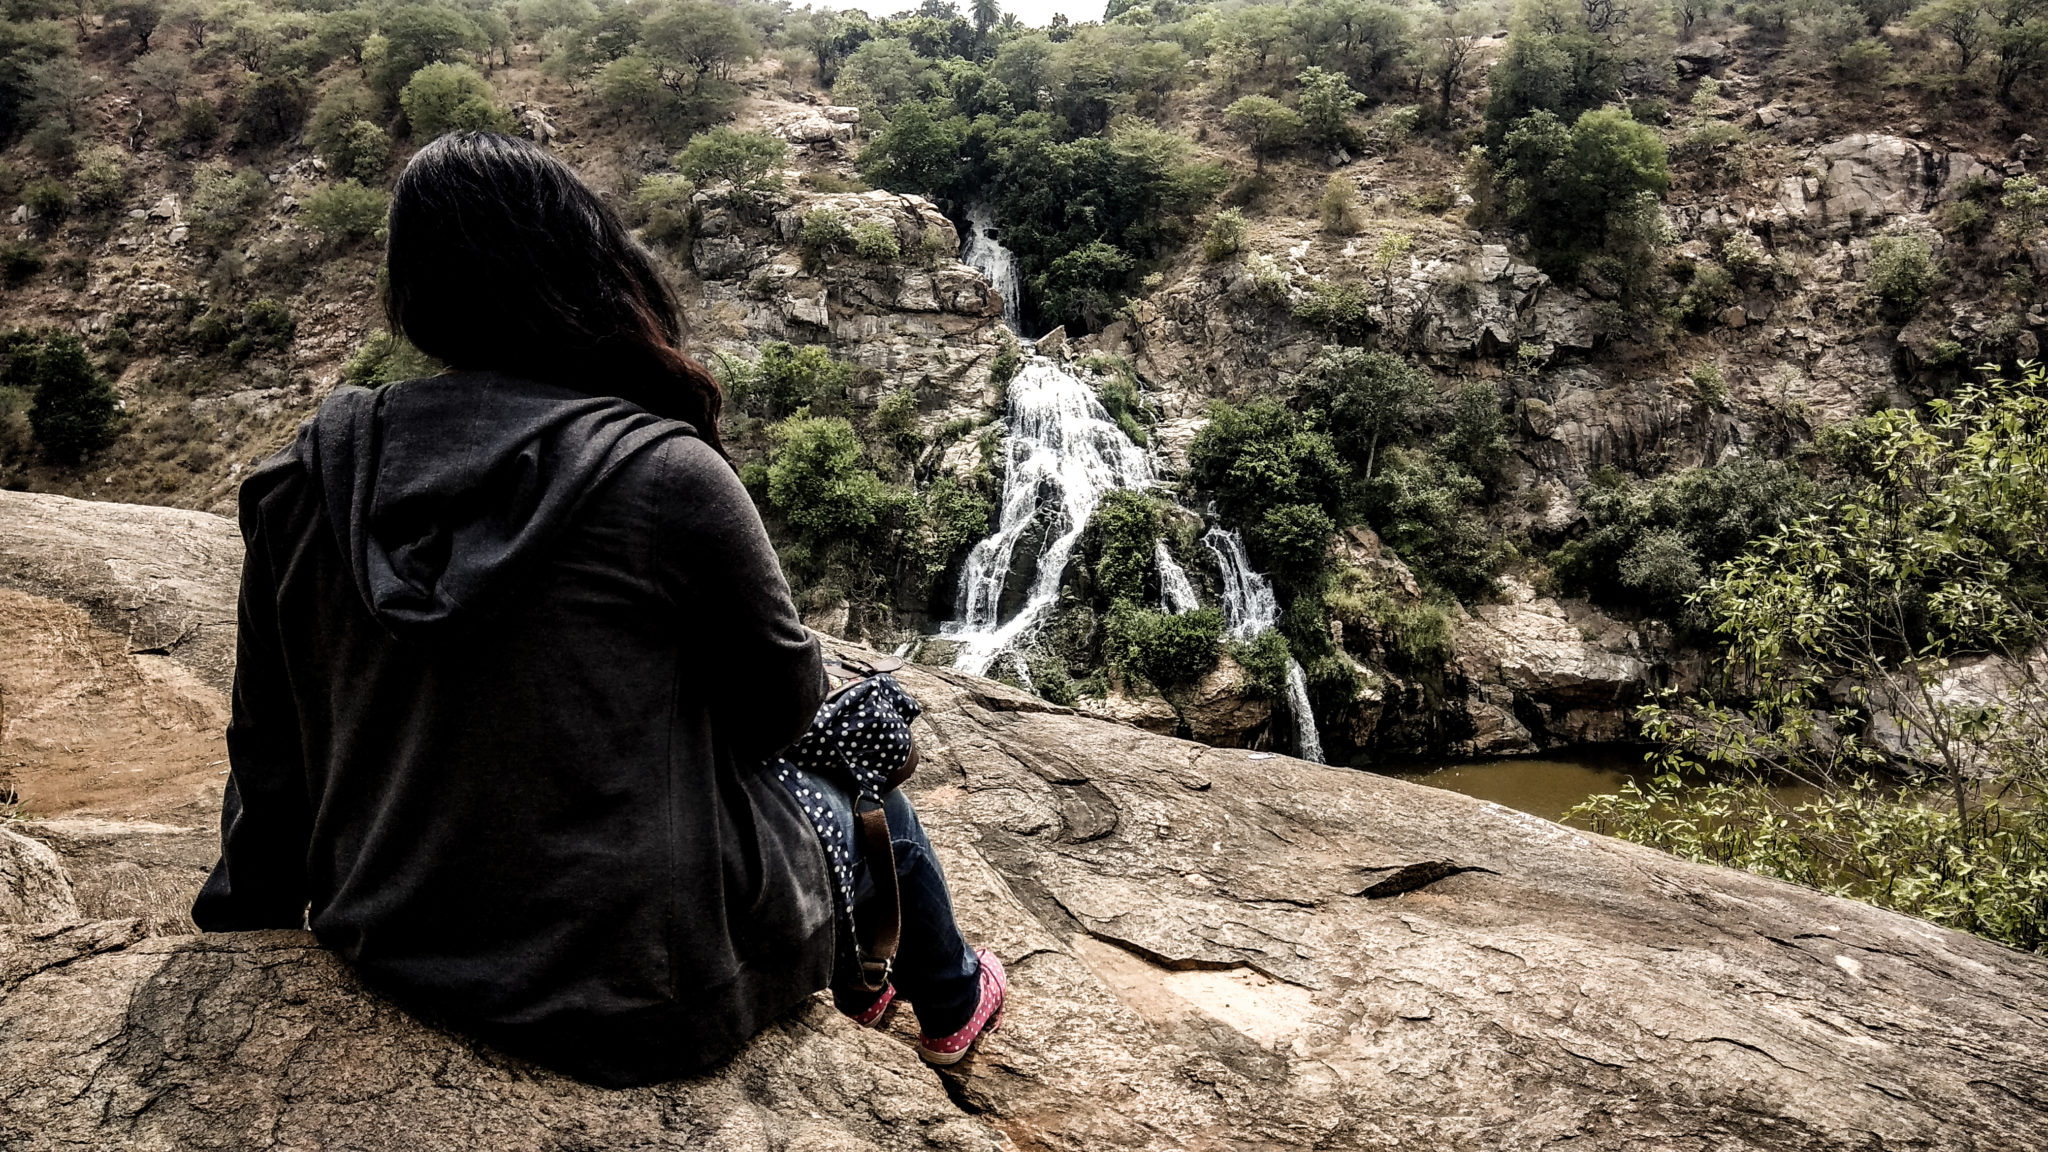 Chunchi falls place to visit near Bangalore